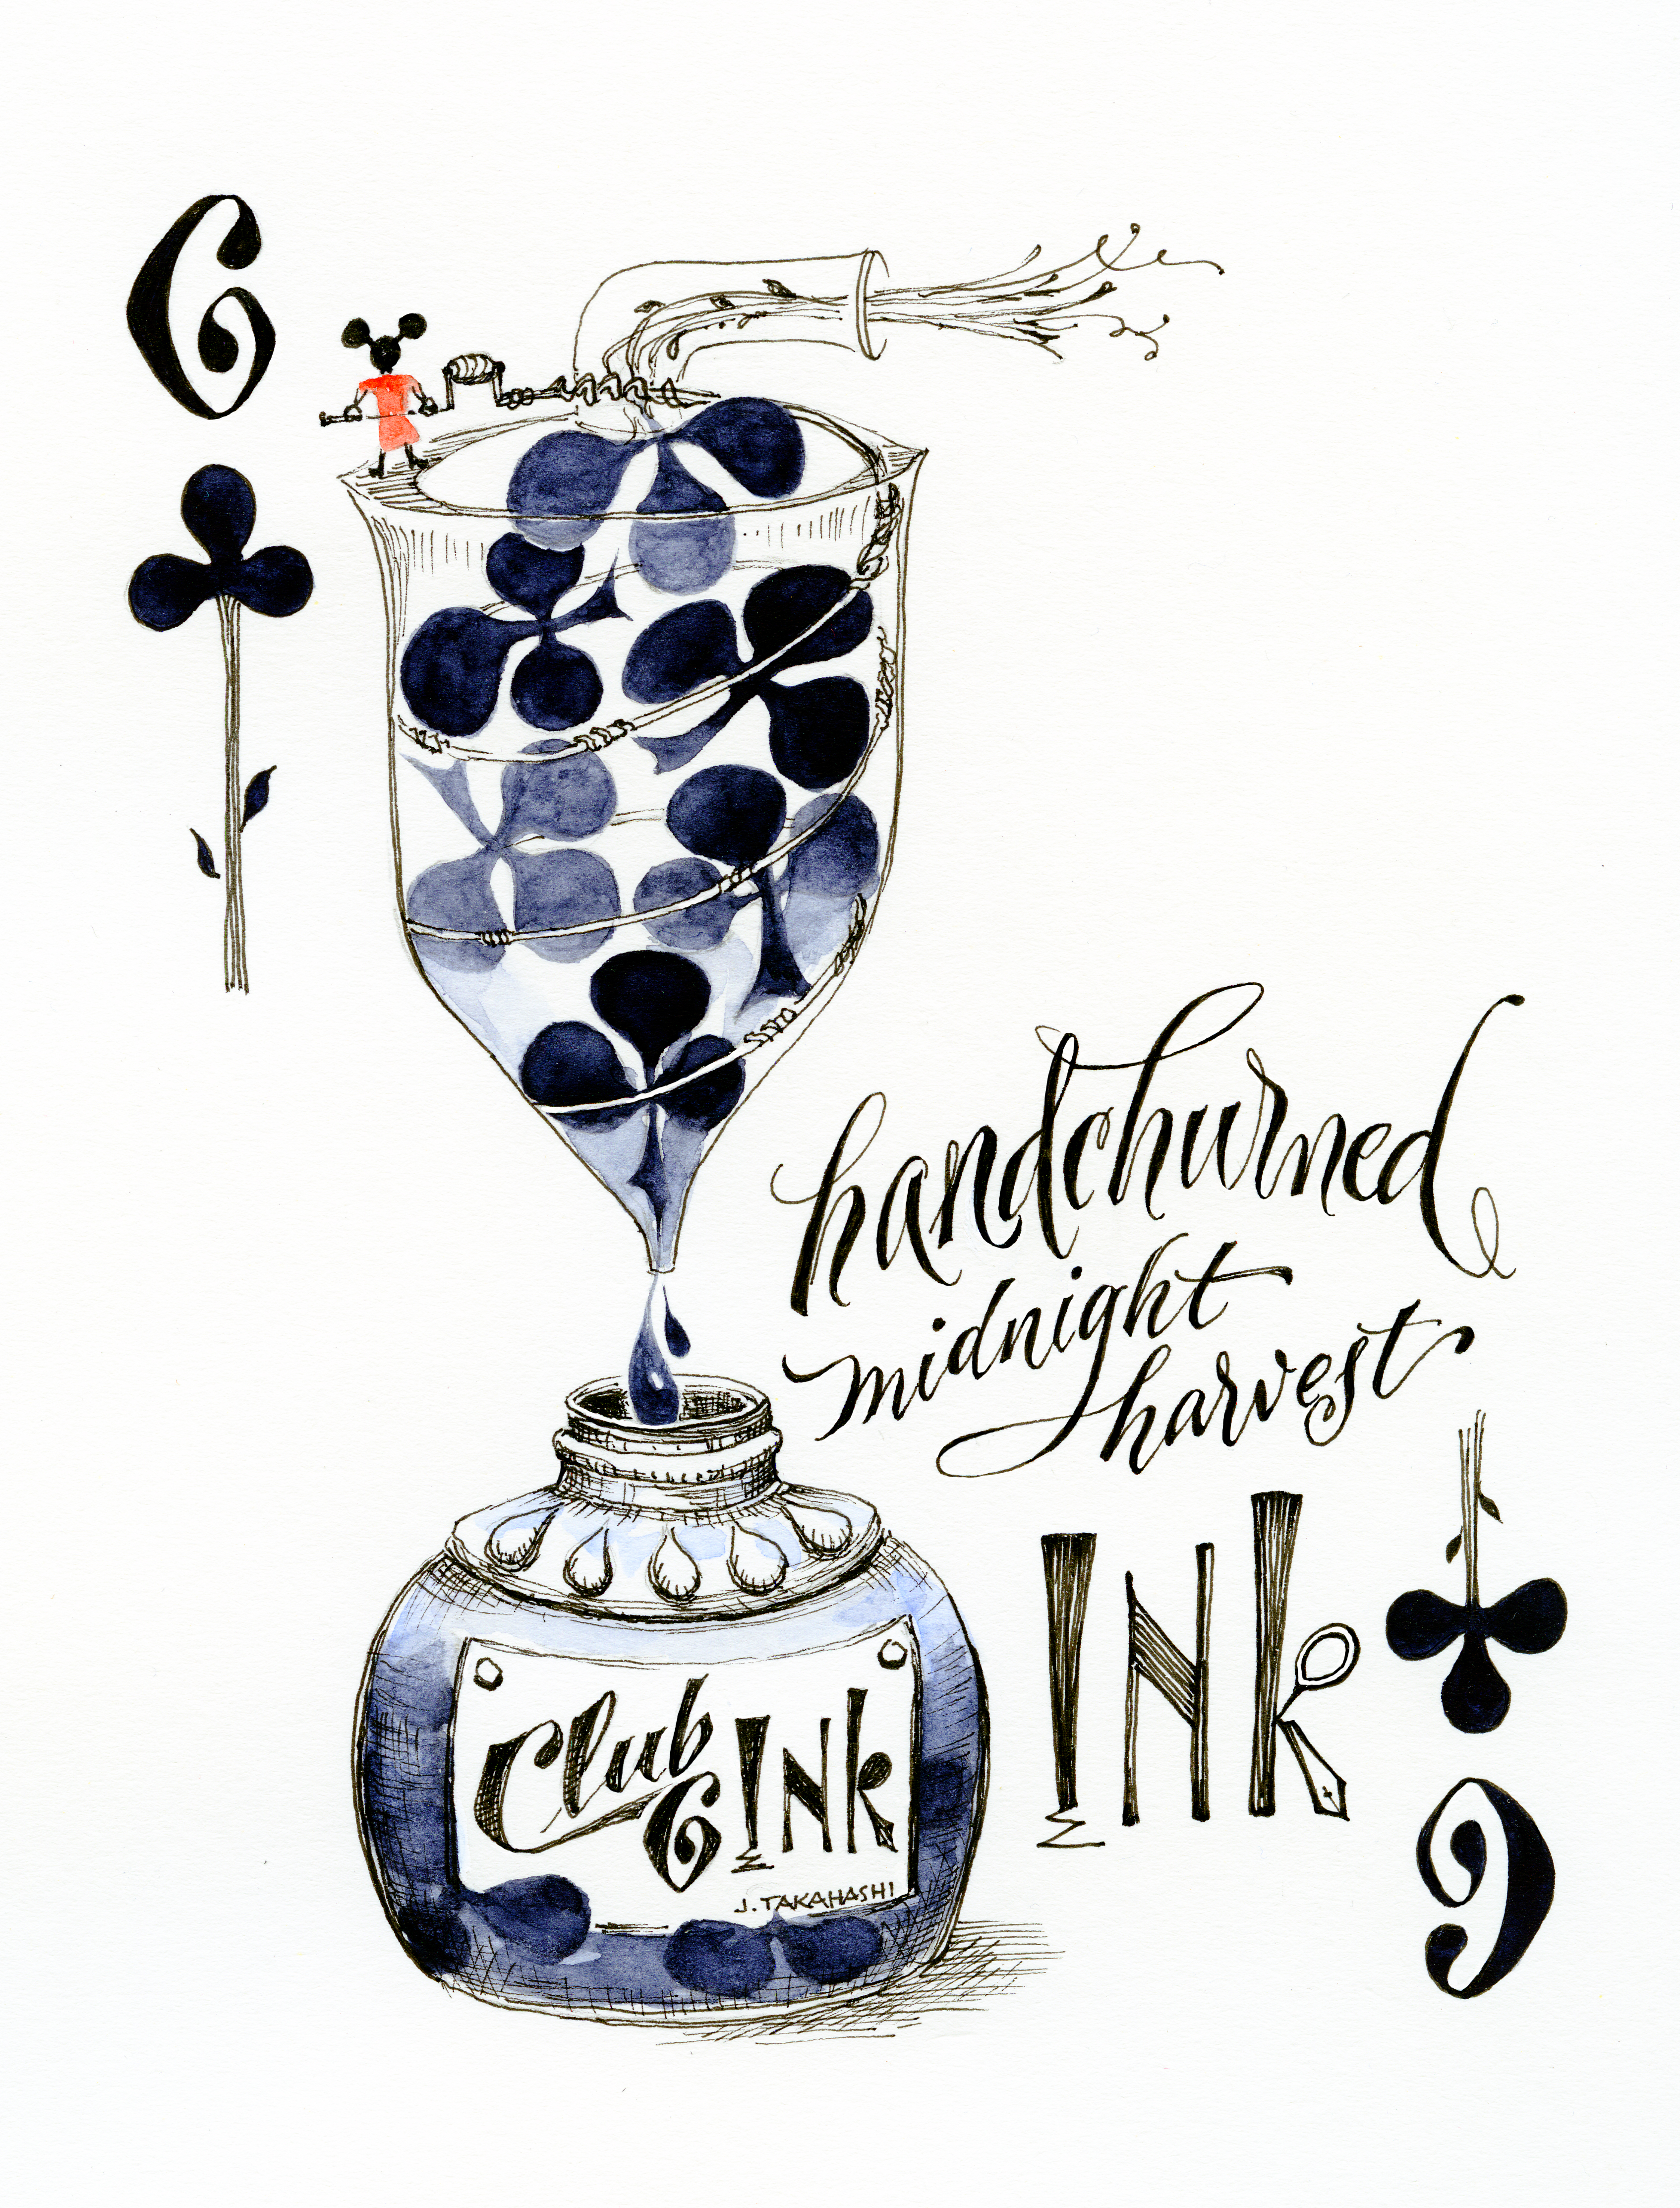 Calligraphy by Janet Takahashi